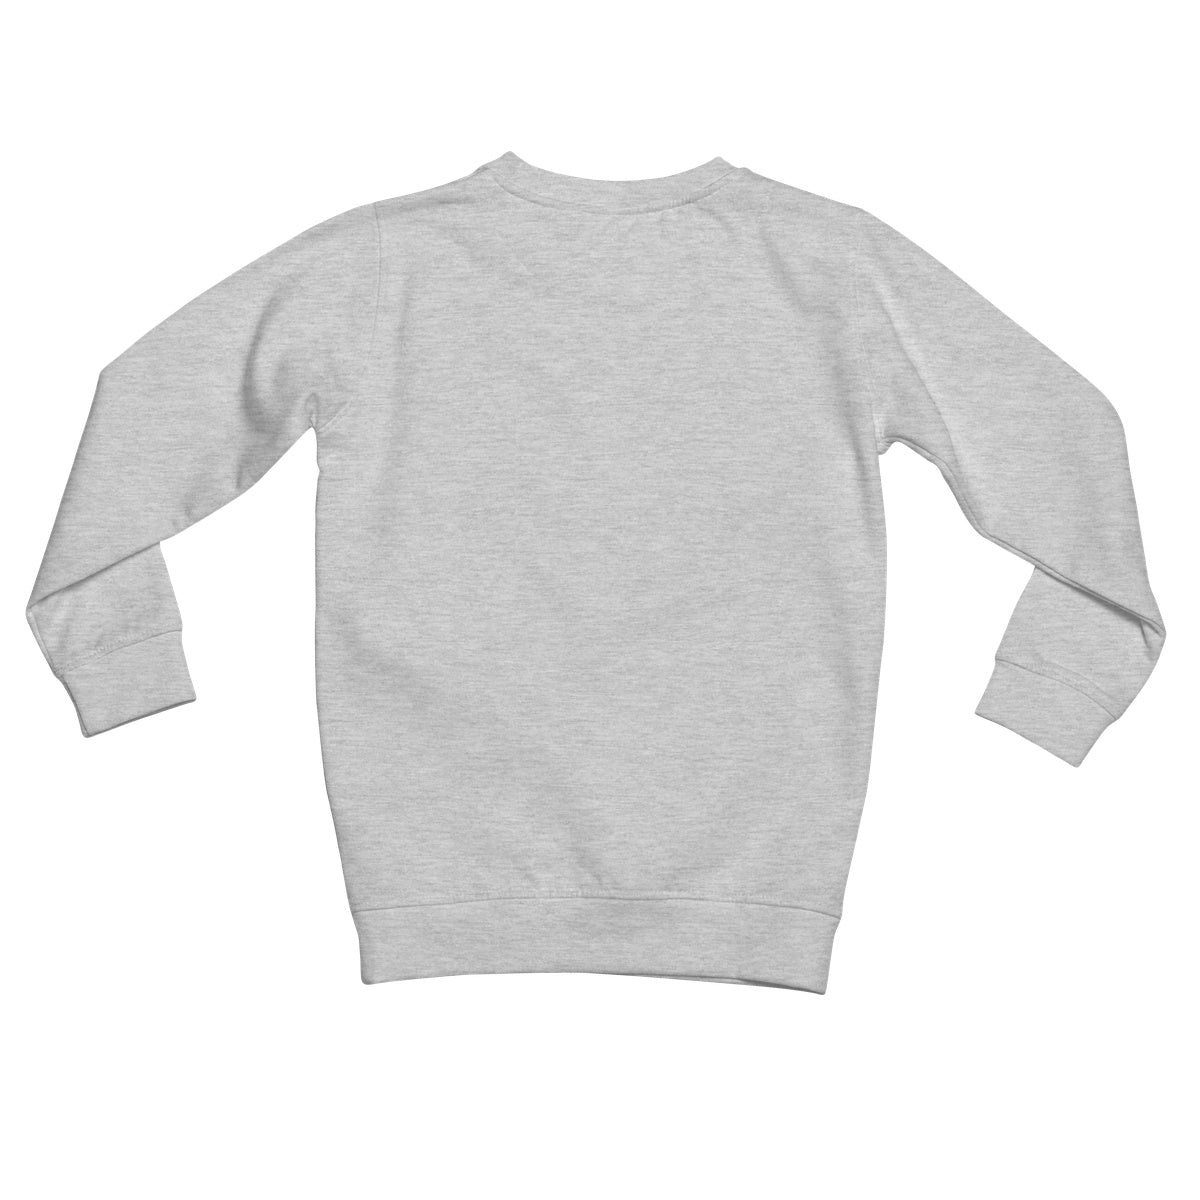 Event Day Kids Retail Sweatshirt